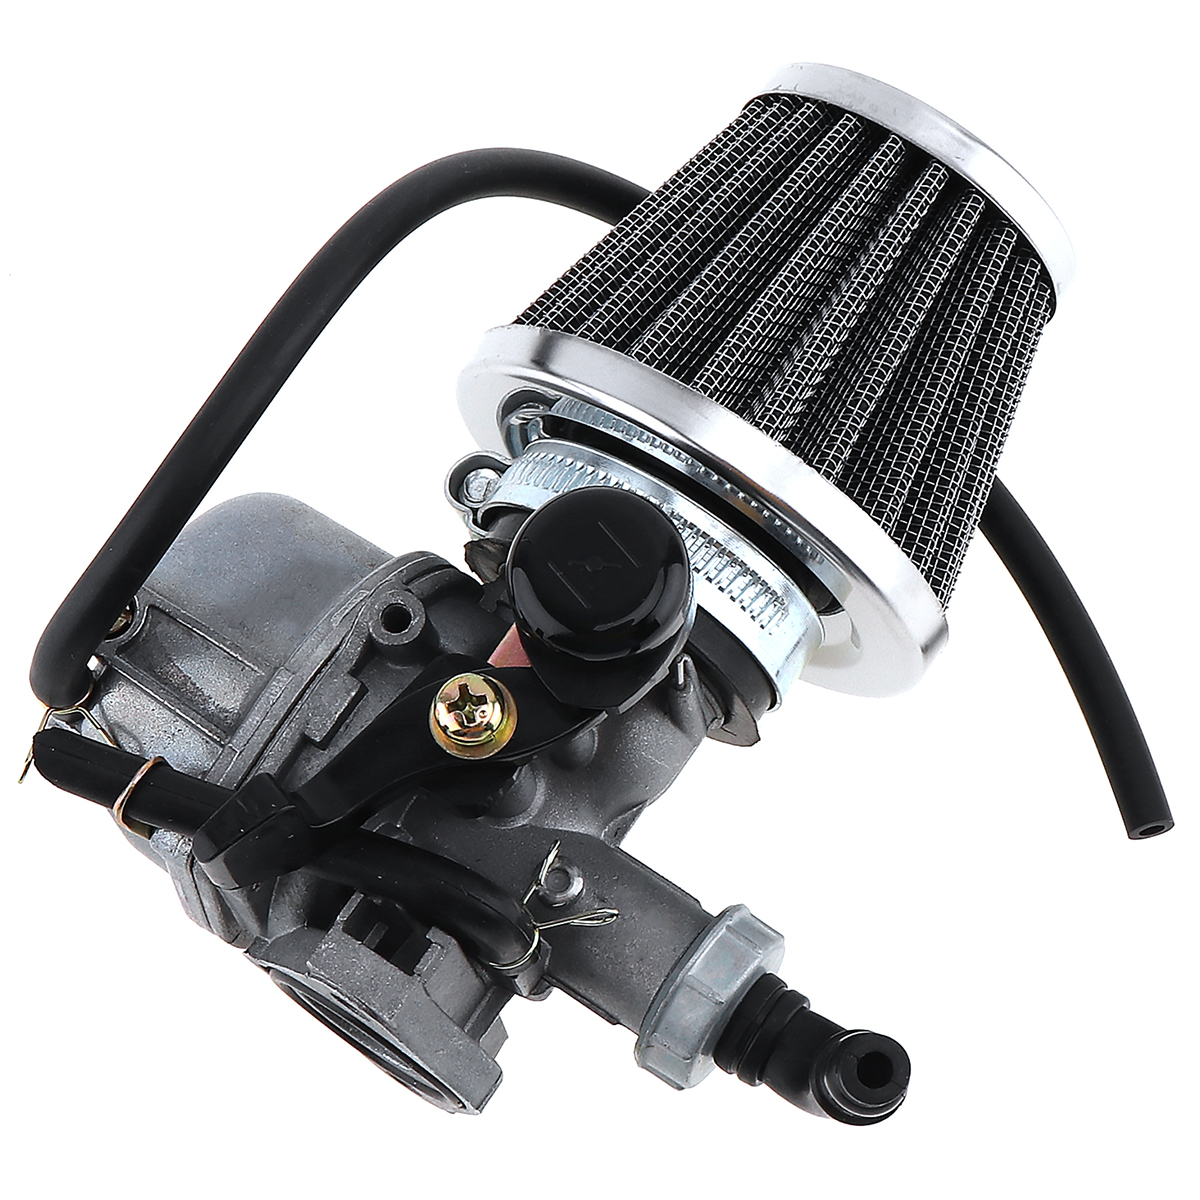 Car <font><b>Carburetor</b></font> 35mm 50CC <font><b>70CC</b></font> 90CC 110CC 125CC <font><b>Carburetor</b></font> with Air Filter for Cross-country Motorcycle ATV Motorbike image